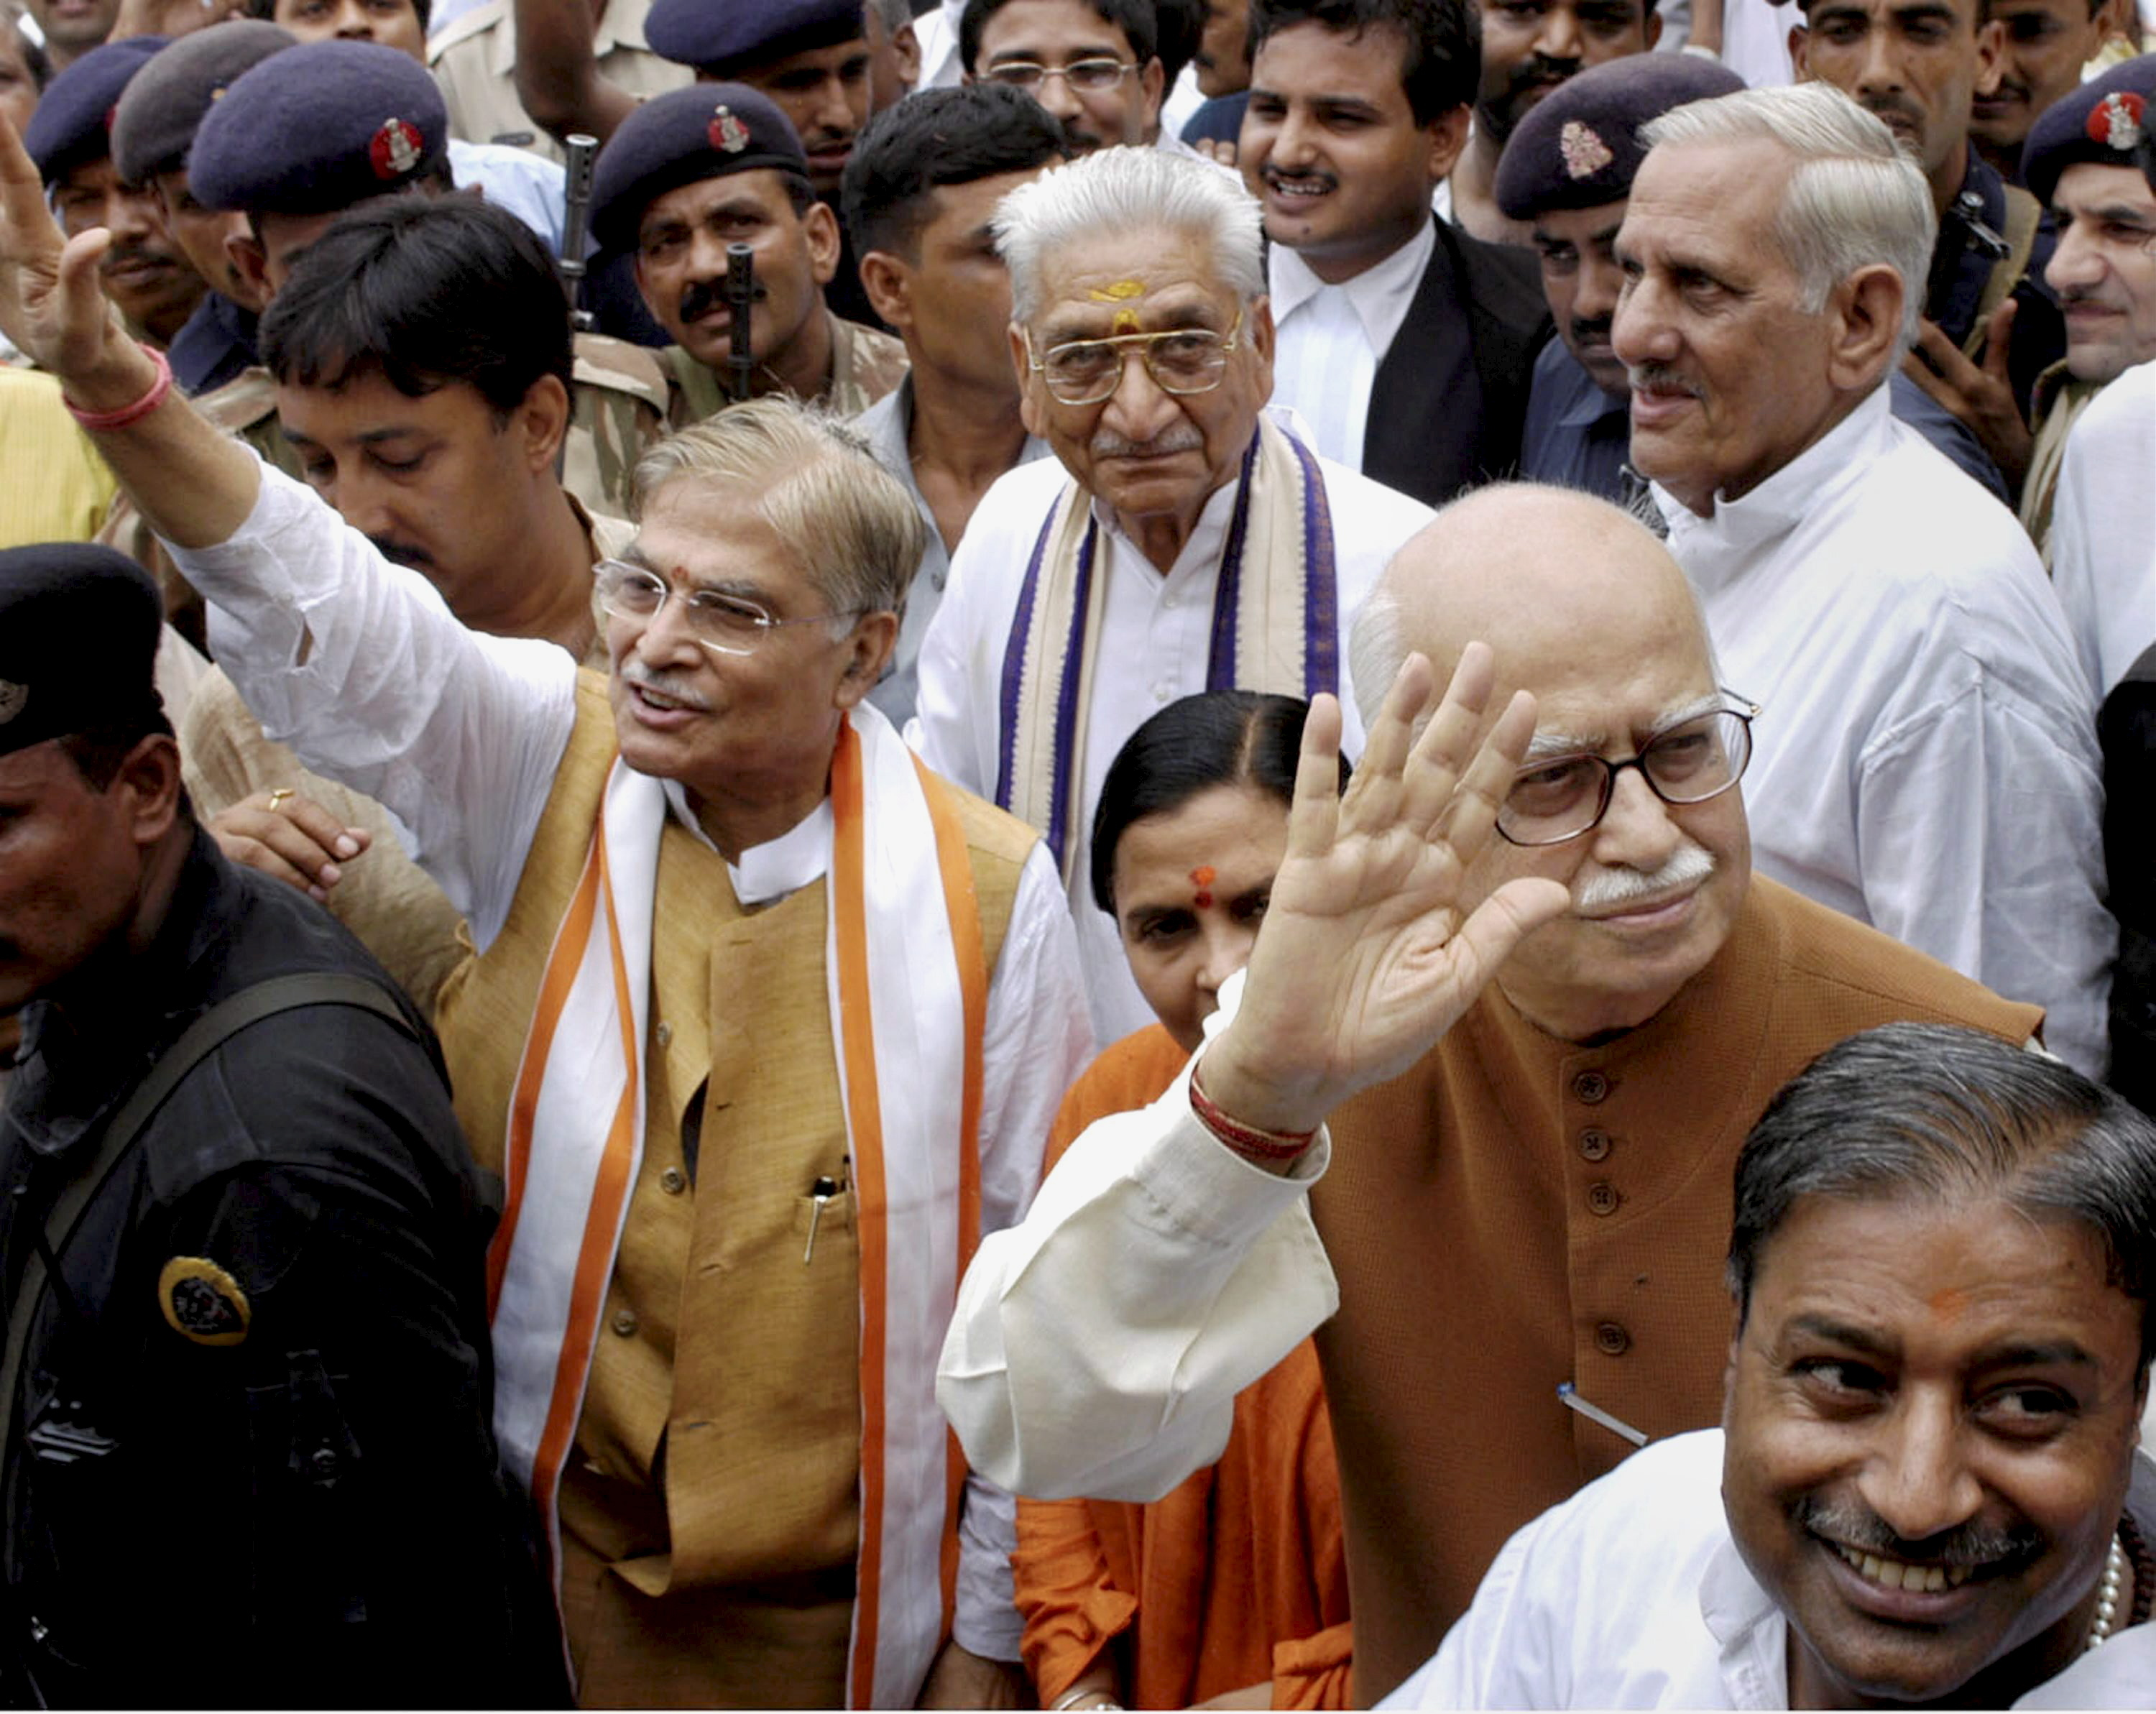 **EDS: FILE** New Delhi: In this file photo, dated July 2005, is seen senior BJP leaders LK Advani, MM Joshi and Uma Bharti in Raebareli. Advani, Joshi and Bharti, accused in Babri mosque demolition case, have been acquitted by the special CBI court after the pronouncement of its judgment in the case, on Wednesday, Sept. 30, 2020. (PTI Photo)(PTI30-09-2020_000047B) *** Local Caption ***